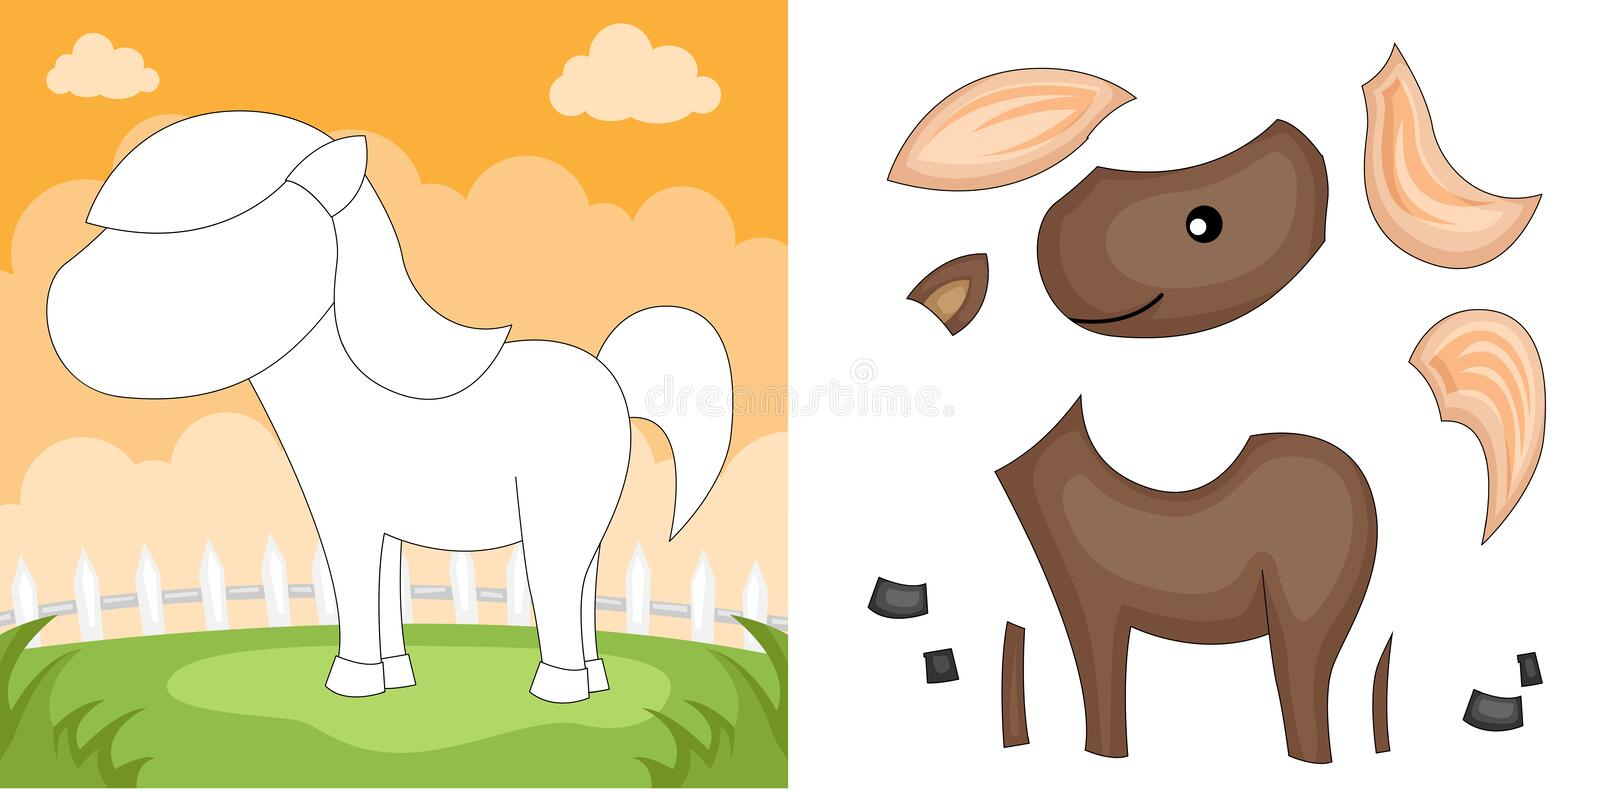 Download Horse Puzzle Stock Photos - Image: 24052153